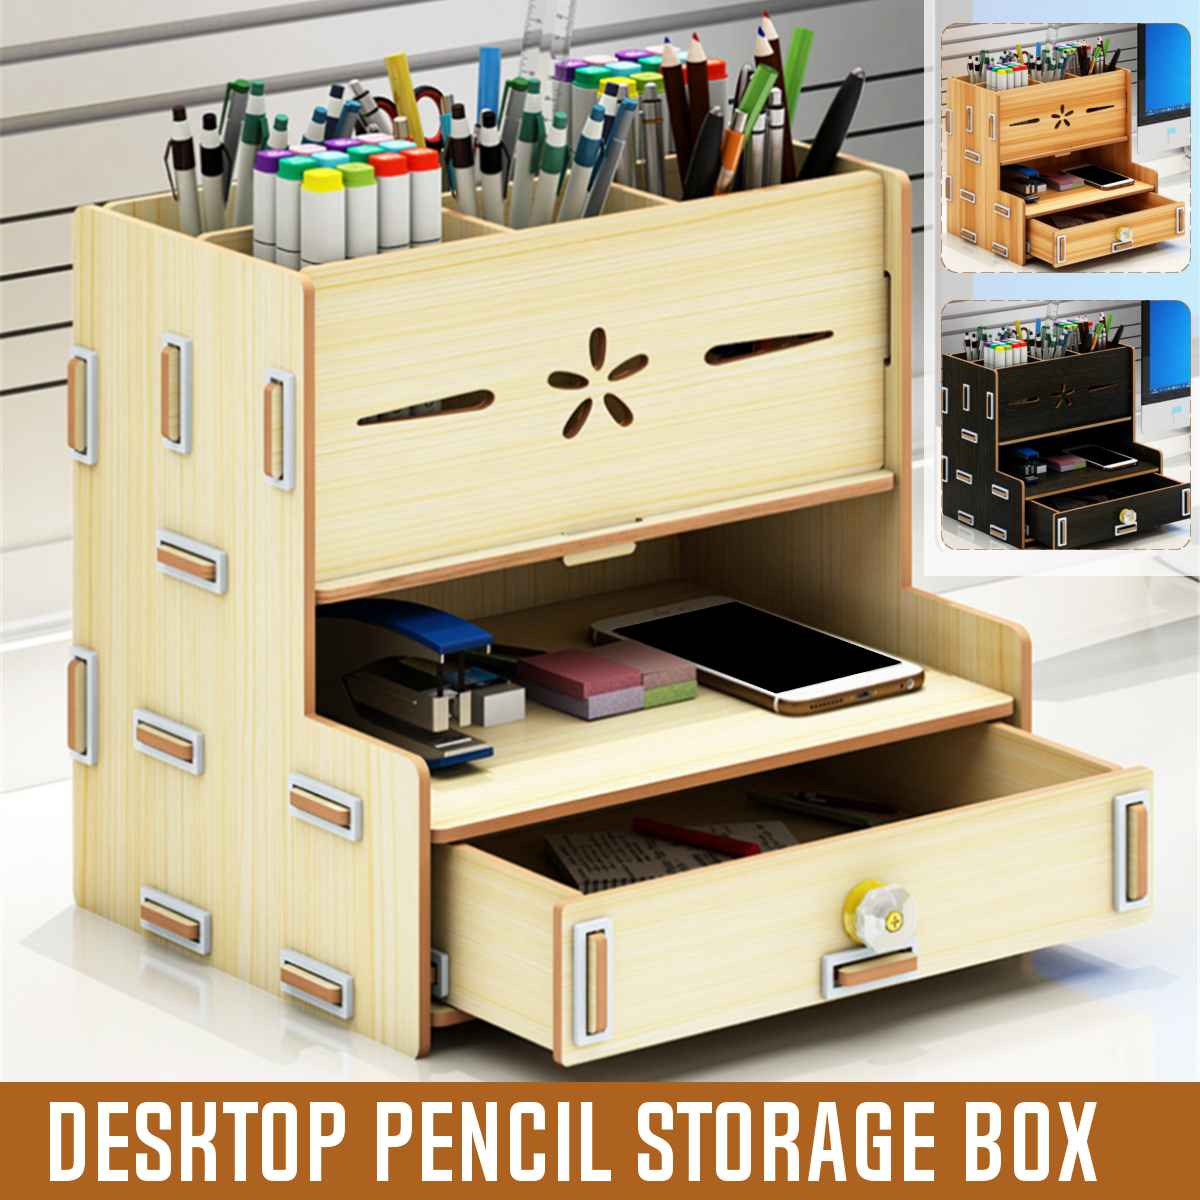 Multi - Functional Pen Holder Students Desktop Organizer Wood Accessories Stationery Barrels Storage Rack Box With Drawer 2020